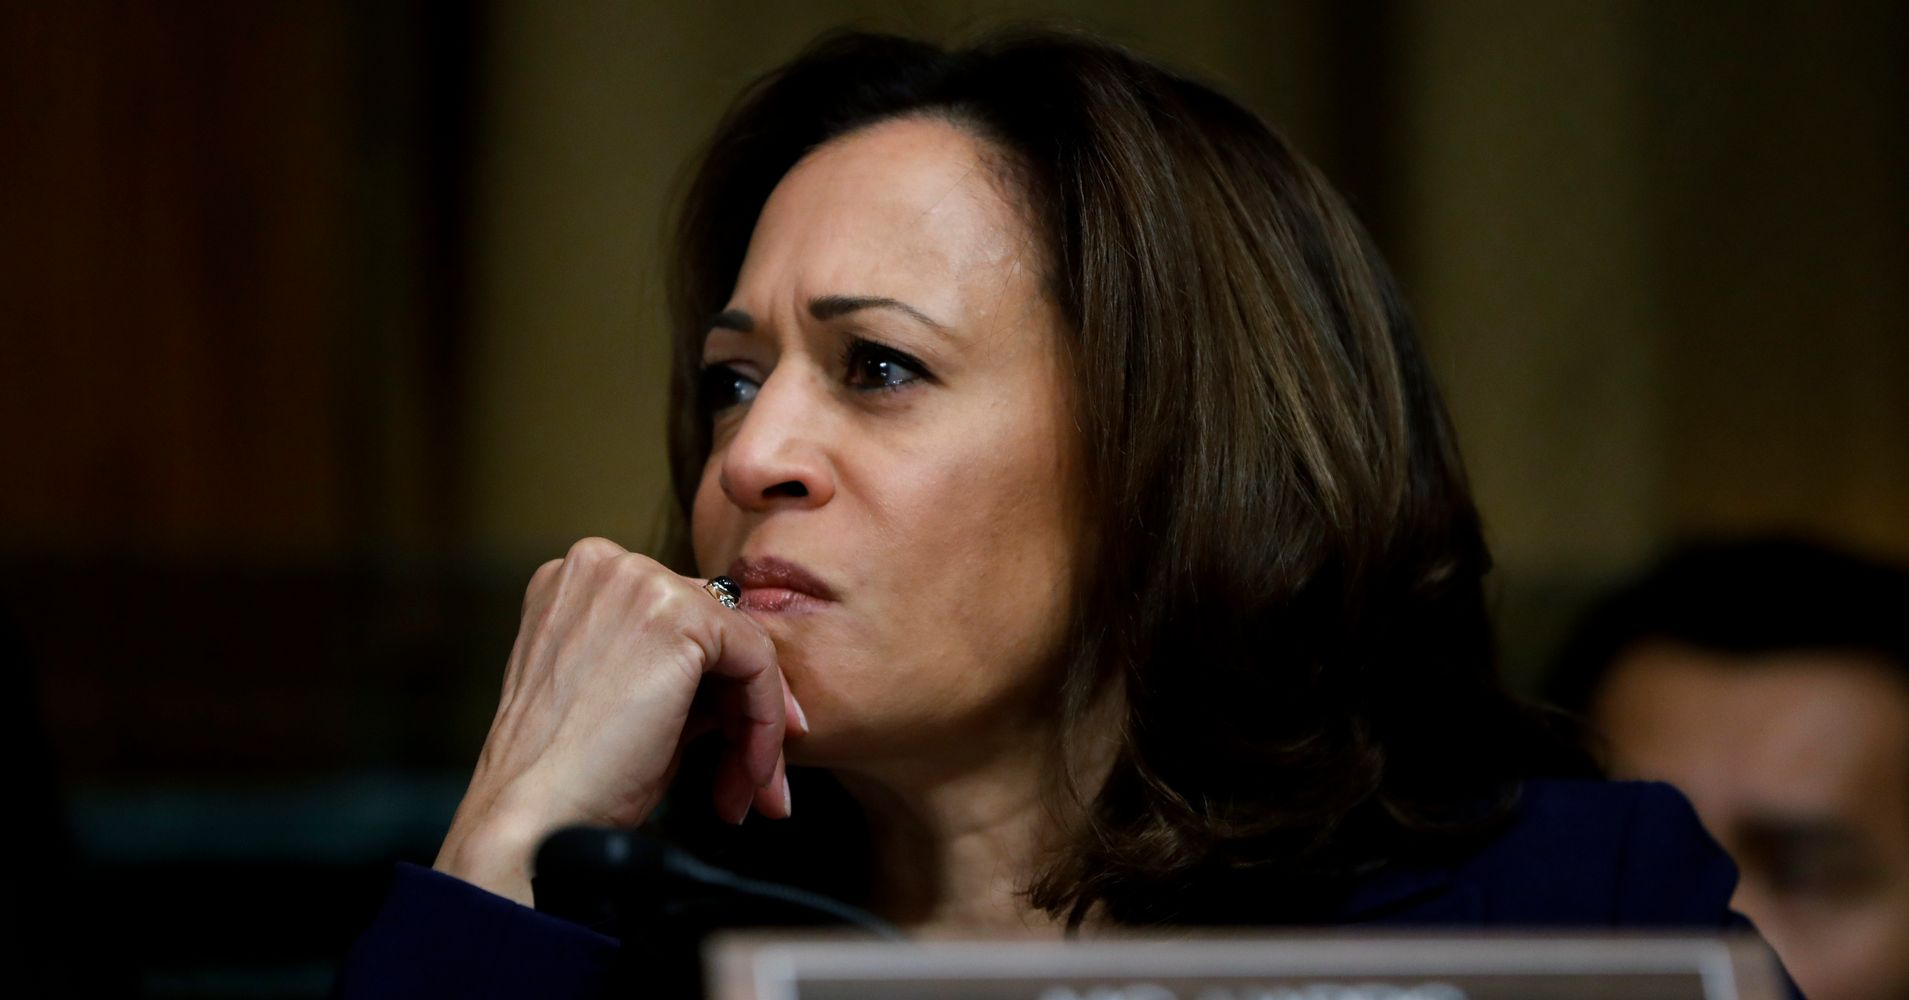 Kamala Harris: Black Mothers 'Must Be Given Dignity' In Health Care